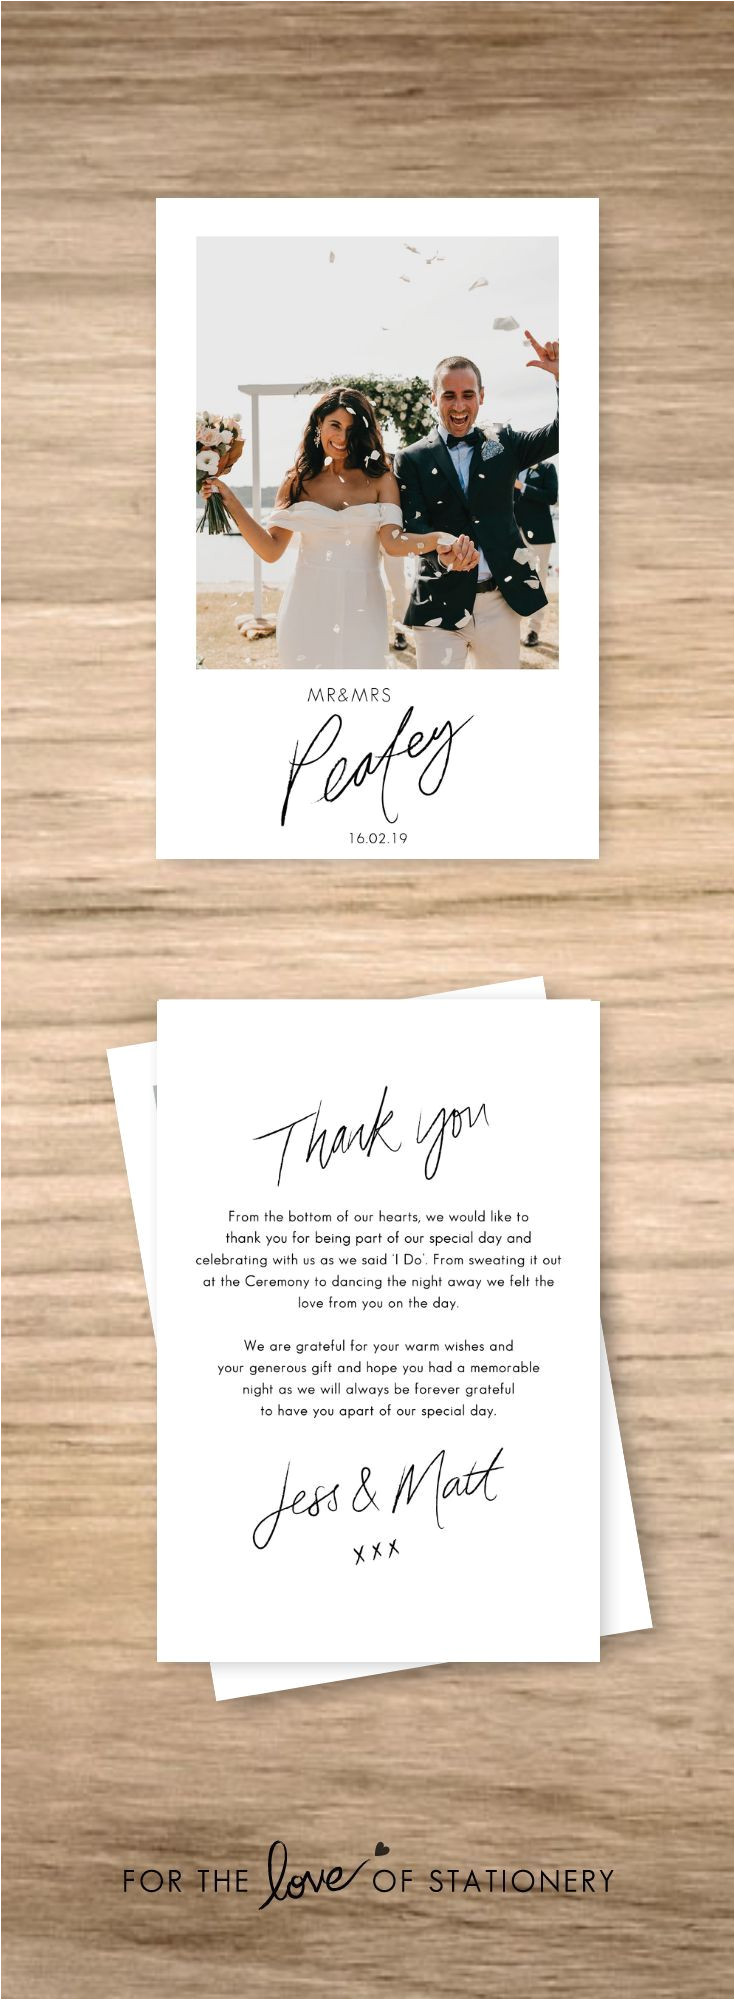 Example Thank You Card Wedding Personalised Wedding Thank You Cards with Photos with